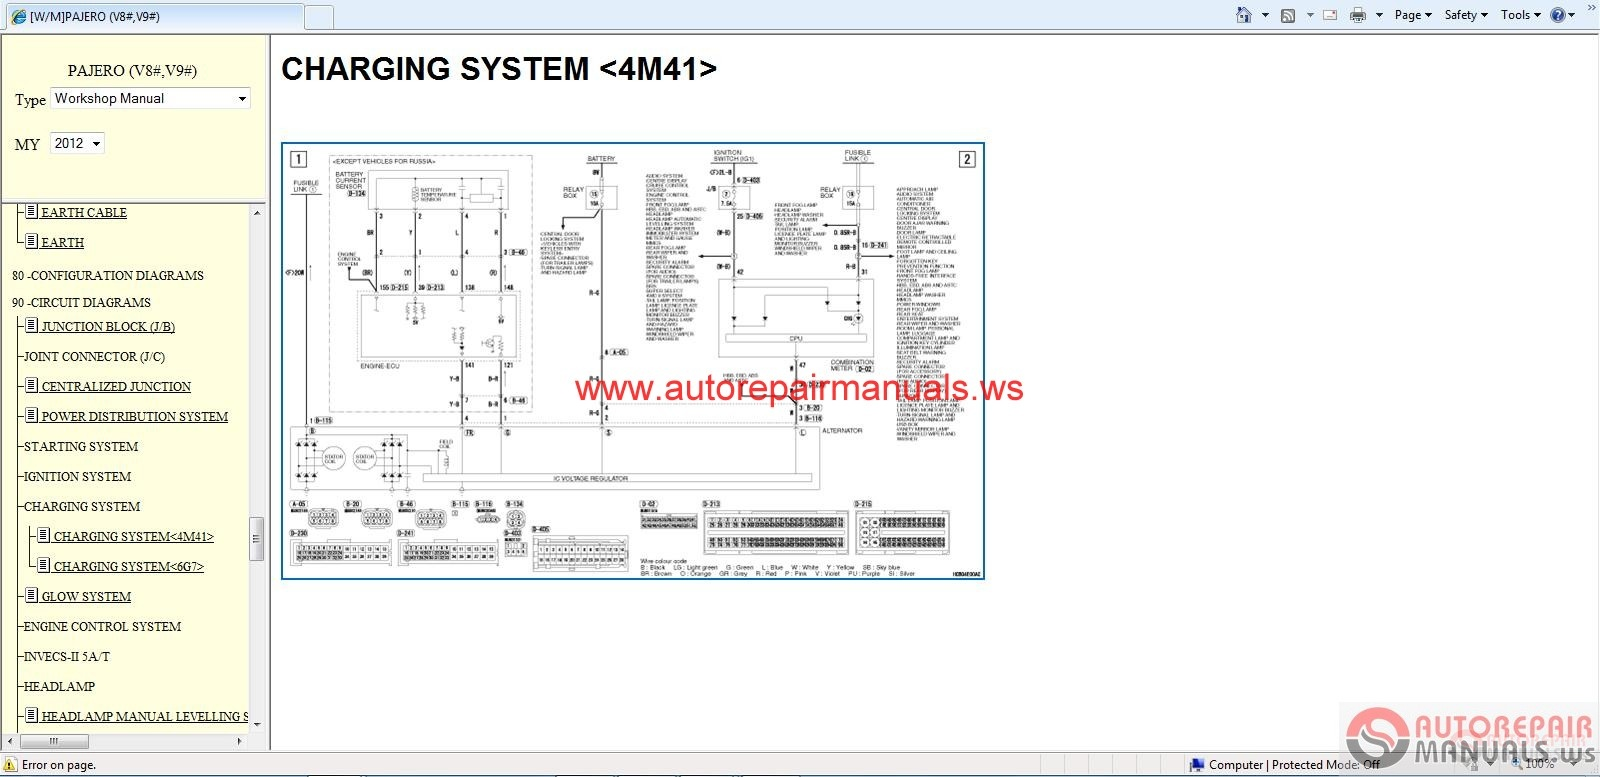 mitsubishi evolution 8 wiring diagram with Mitsubishi Lancer Ix 2004 Wiring Diagrams on 662602 Evo 8 Ecu Evo 4 Problems as well Ktm Parts Diagrams further Good Quality Speaker Wire For Bi Wiring B W 703 besides 618412 How Install Full Auto C Climate Control further Nissan 240sx 2jz Engine.